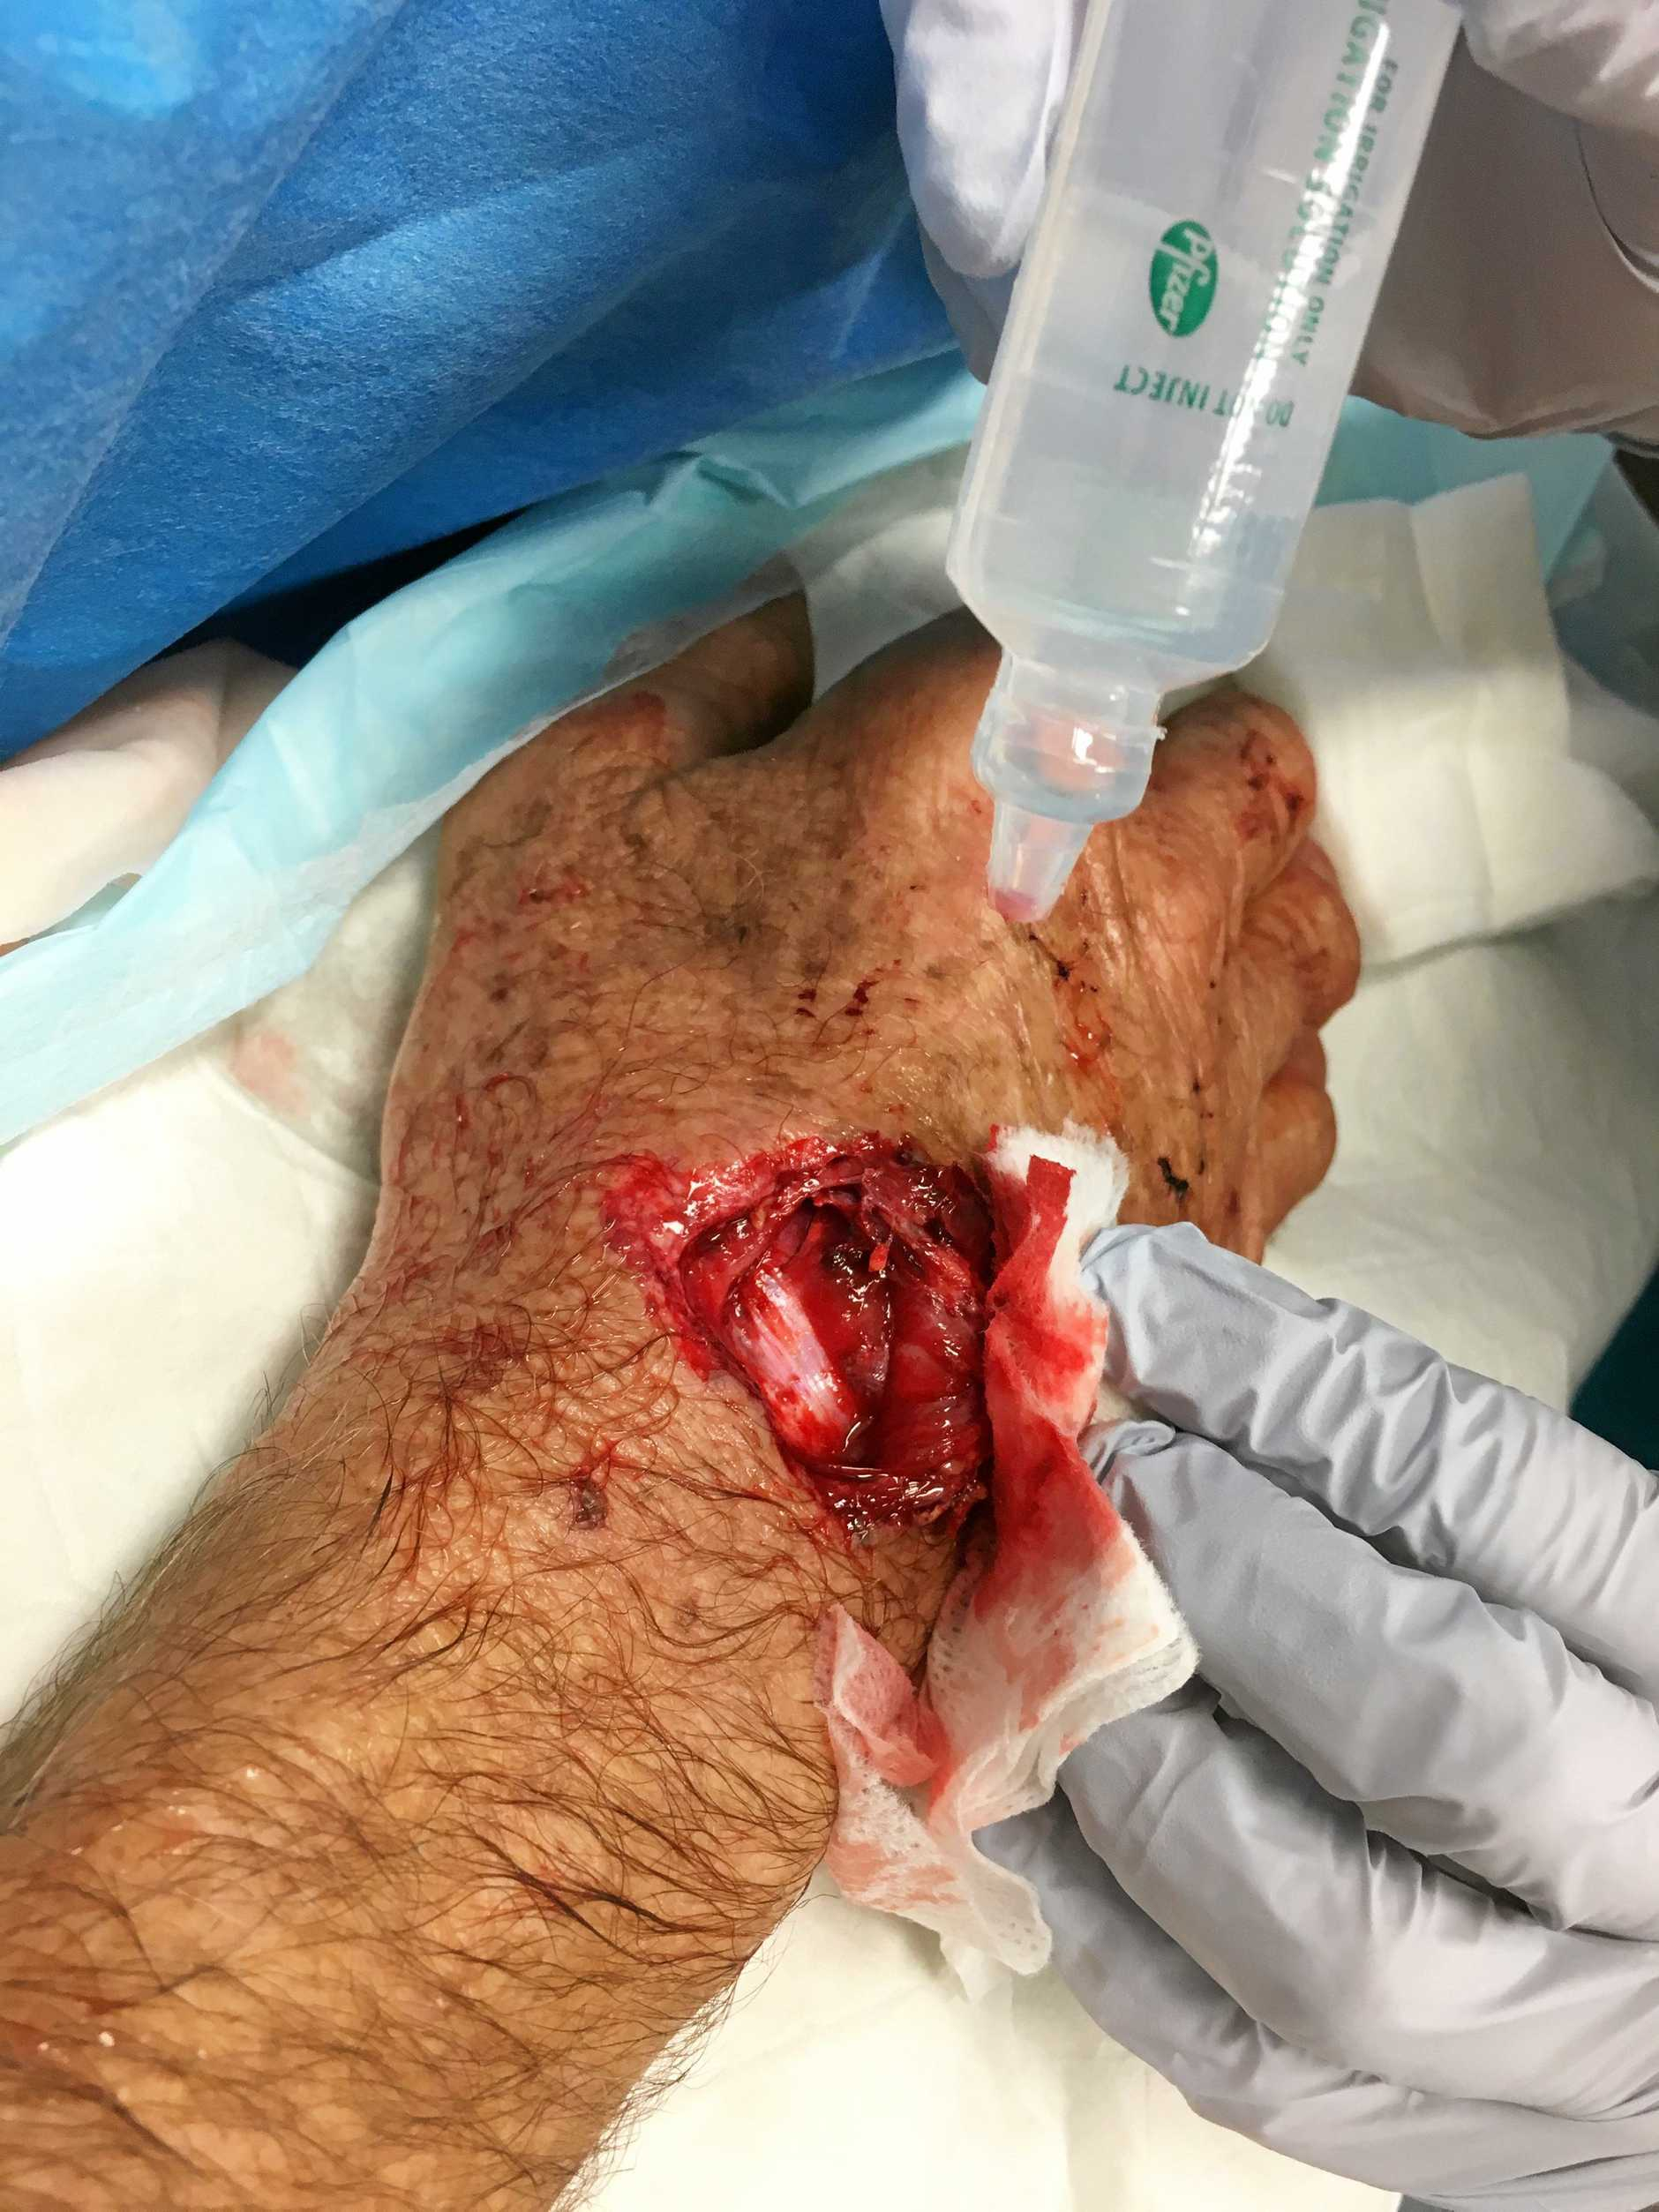 TRAUMATIC: Pete Wood sustained a deep gash to his right wrist after a surf rage incident at The Pass last Friday, June 22.